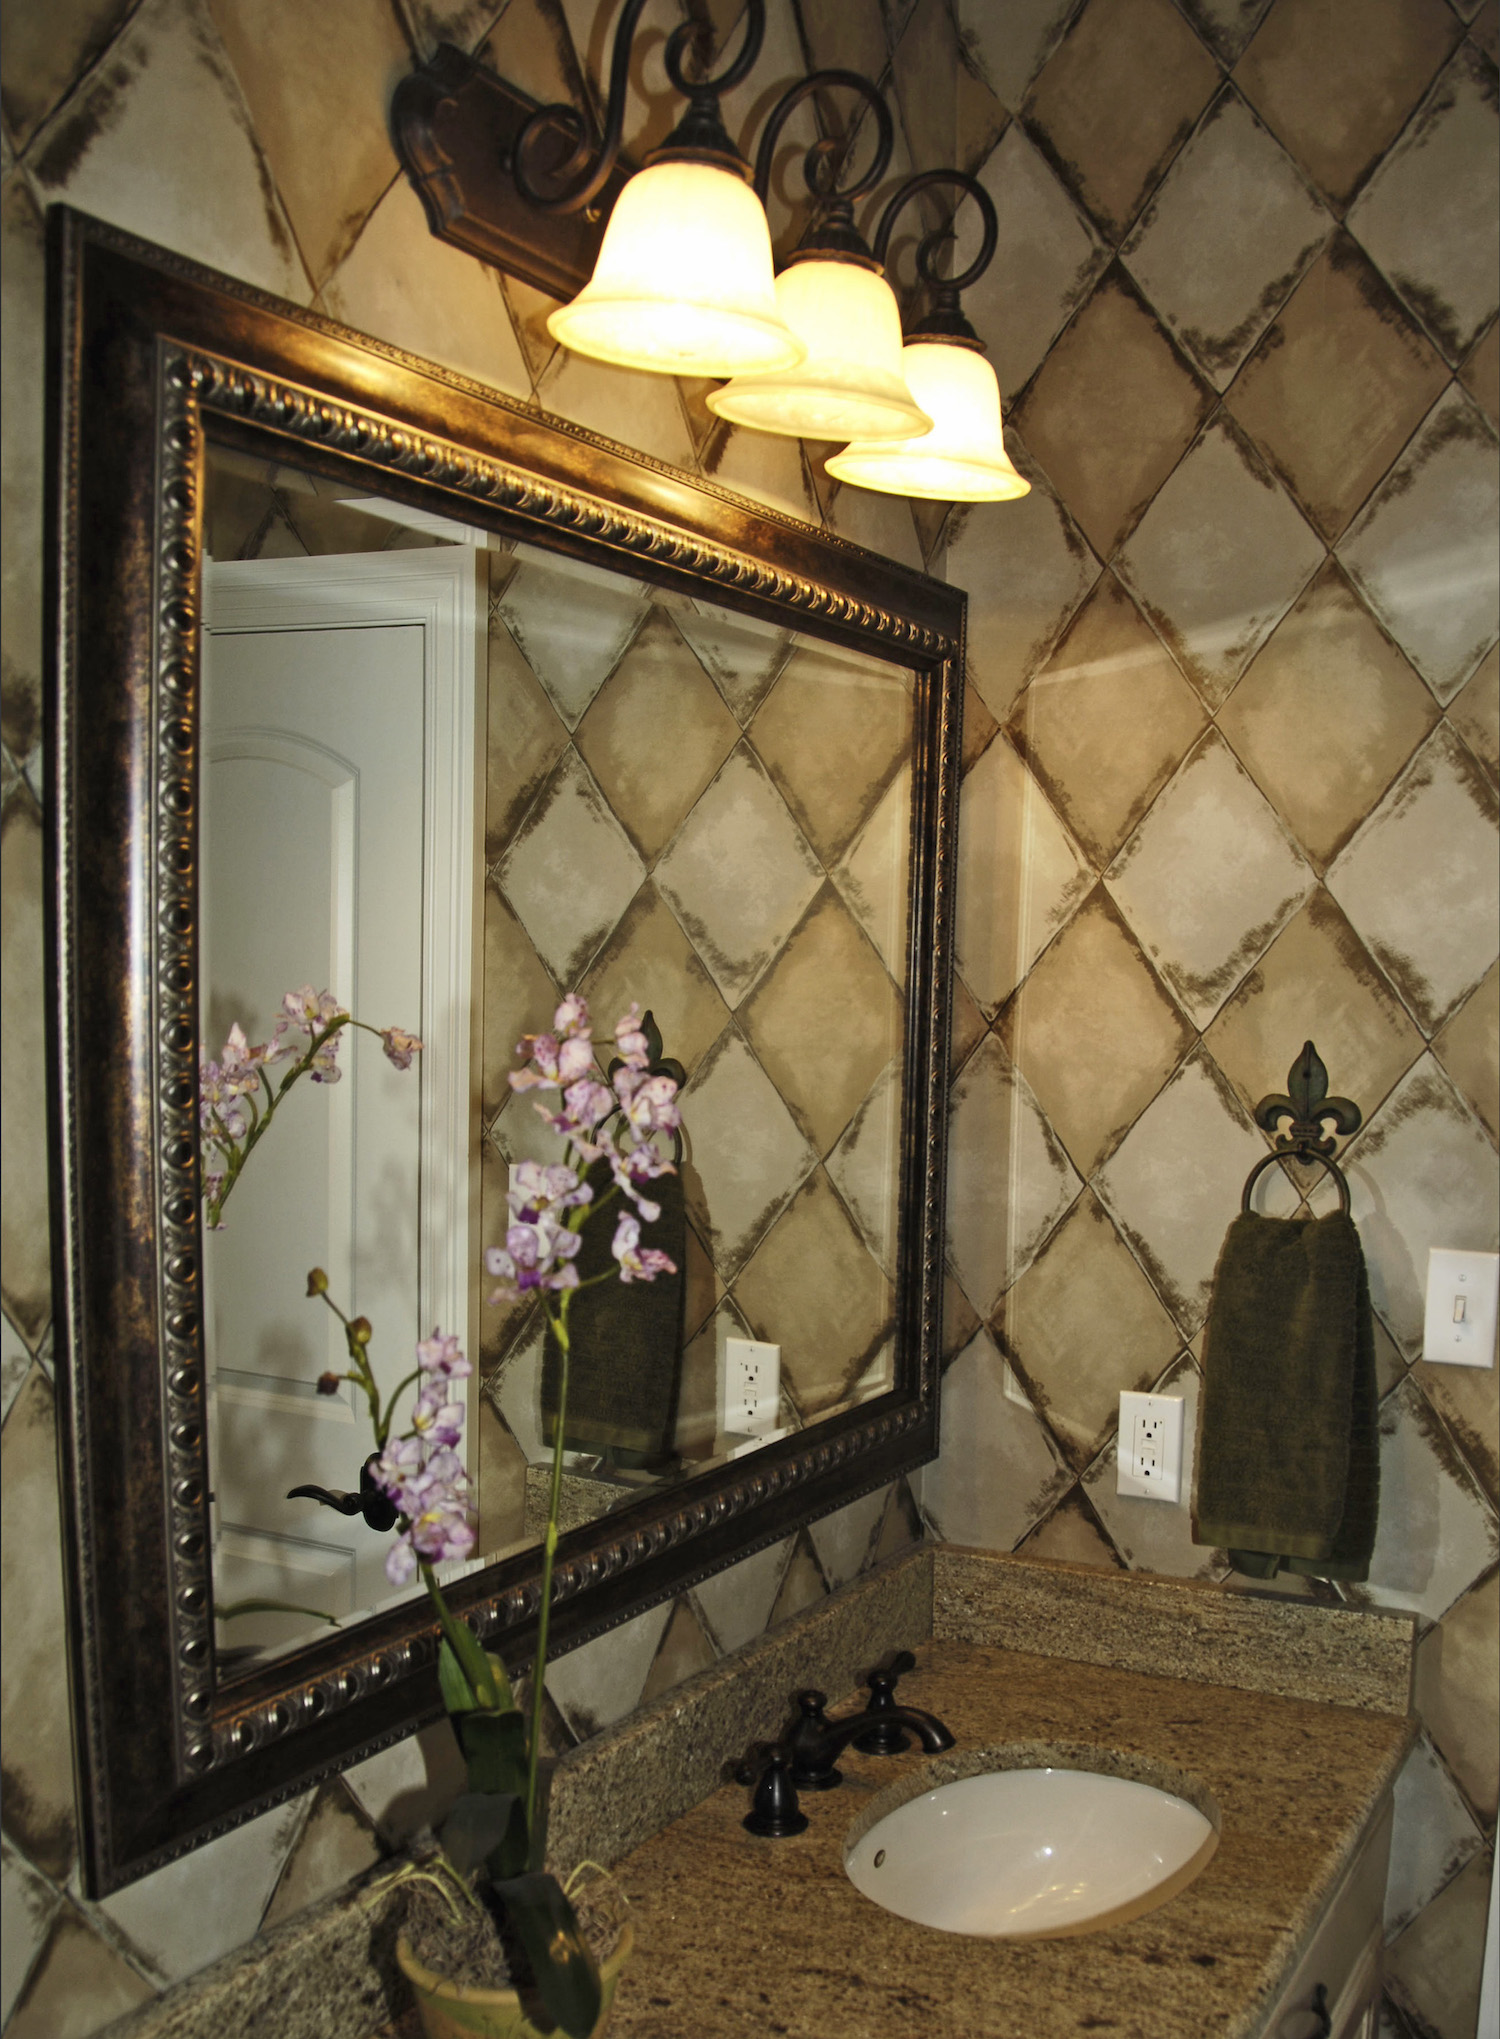 23-Lakeshore-Upstairs-Vanity